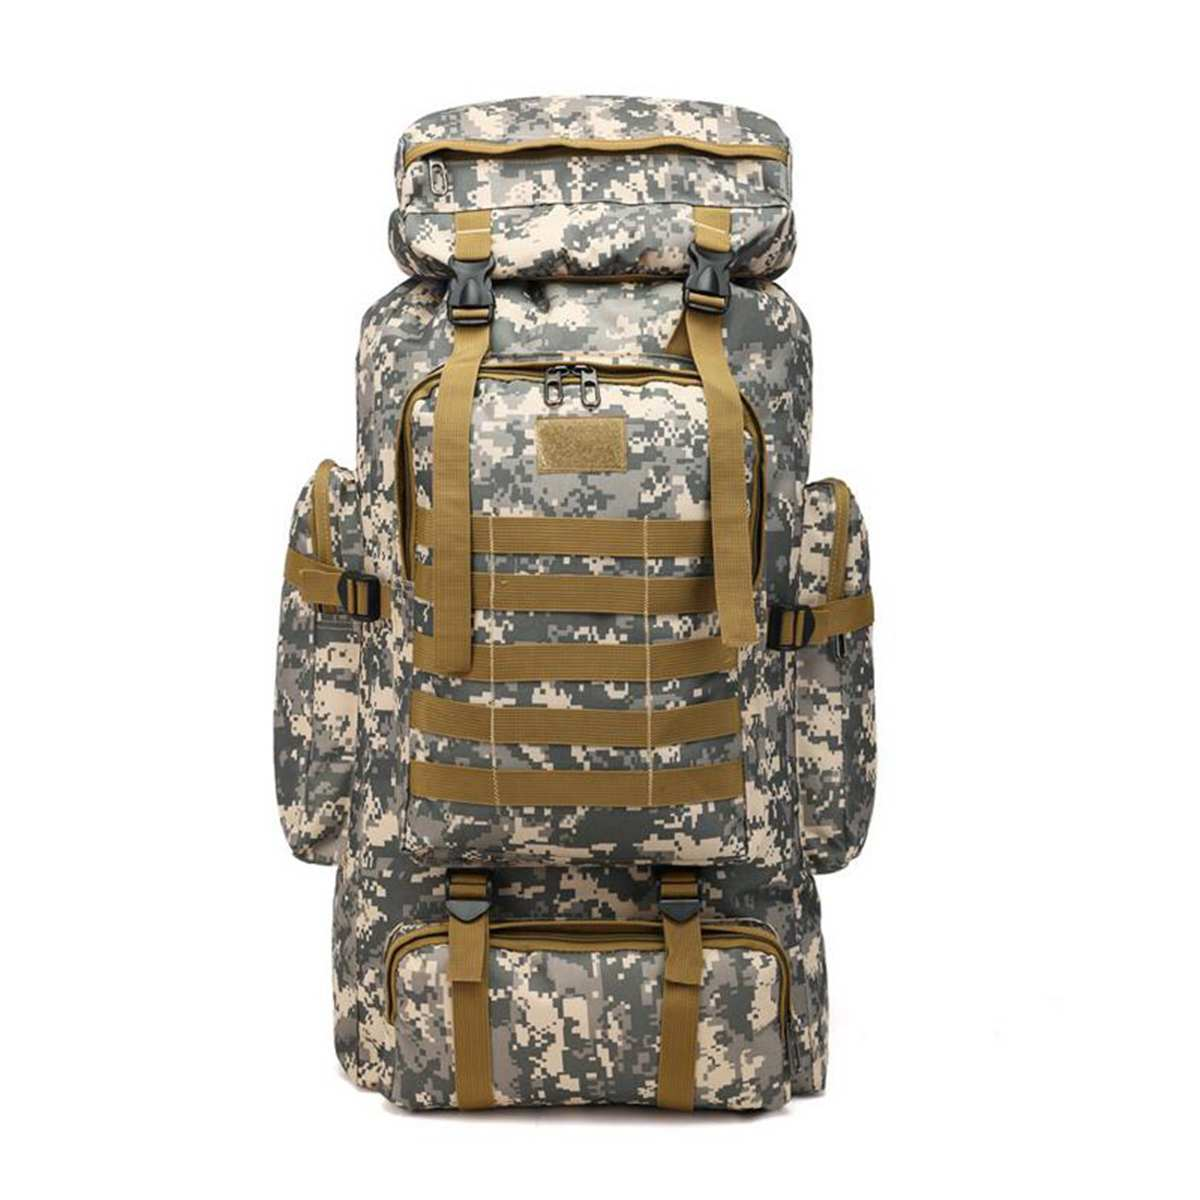 80L Outdoor Military Rucksacks Oxford Fabric Waterproof Tactical backpack Sports Camping Hiking Trekking Fishing Hunting Bags